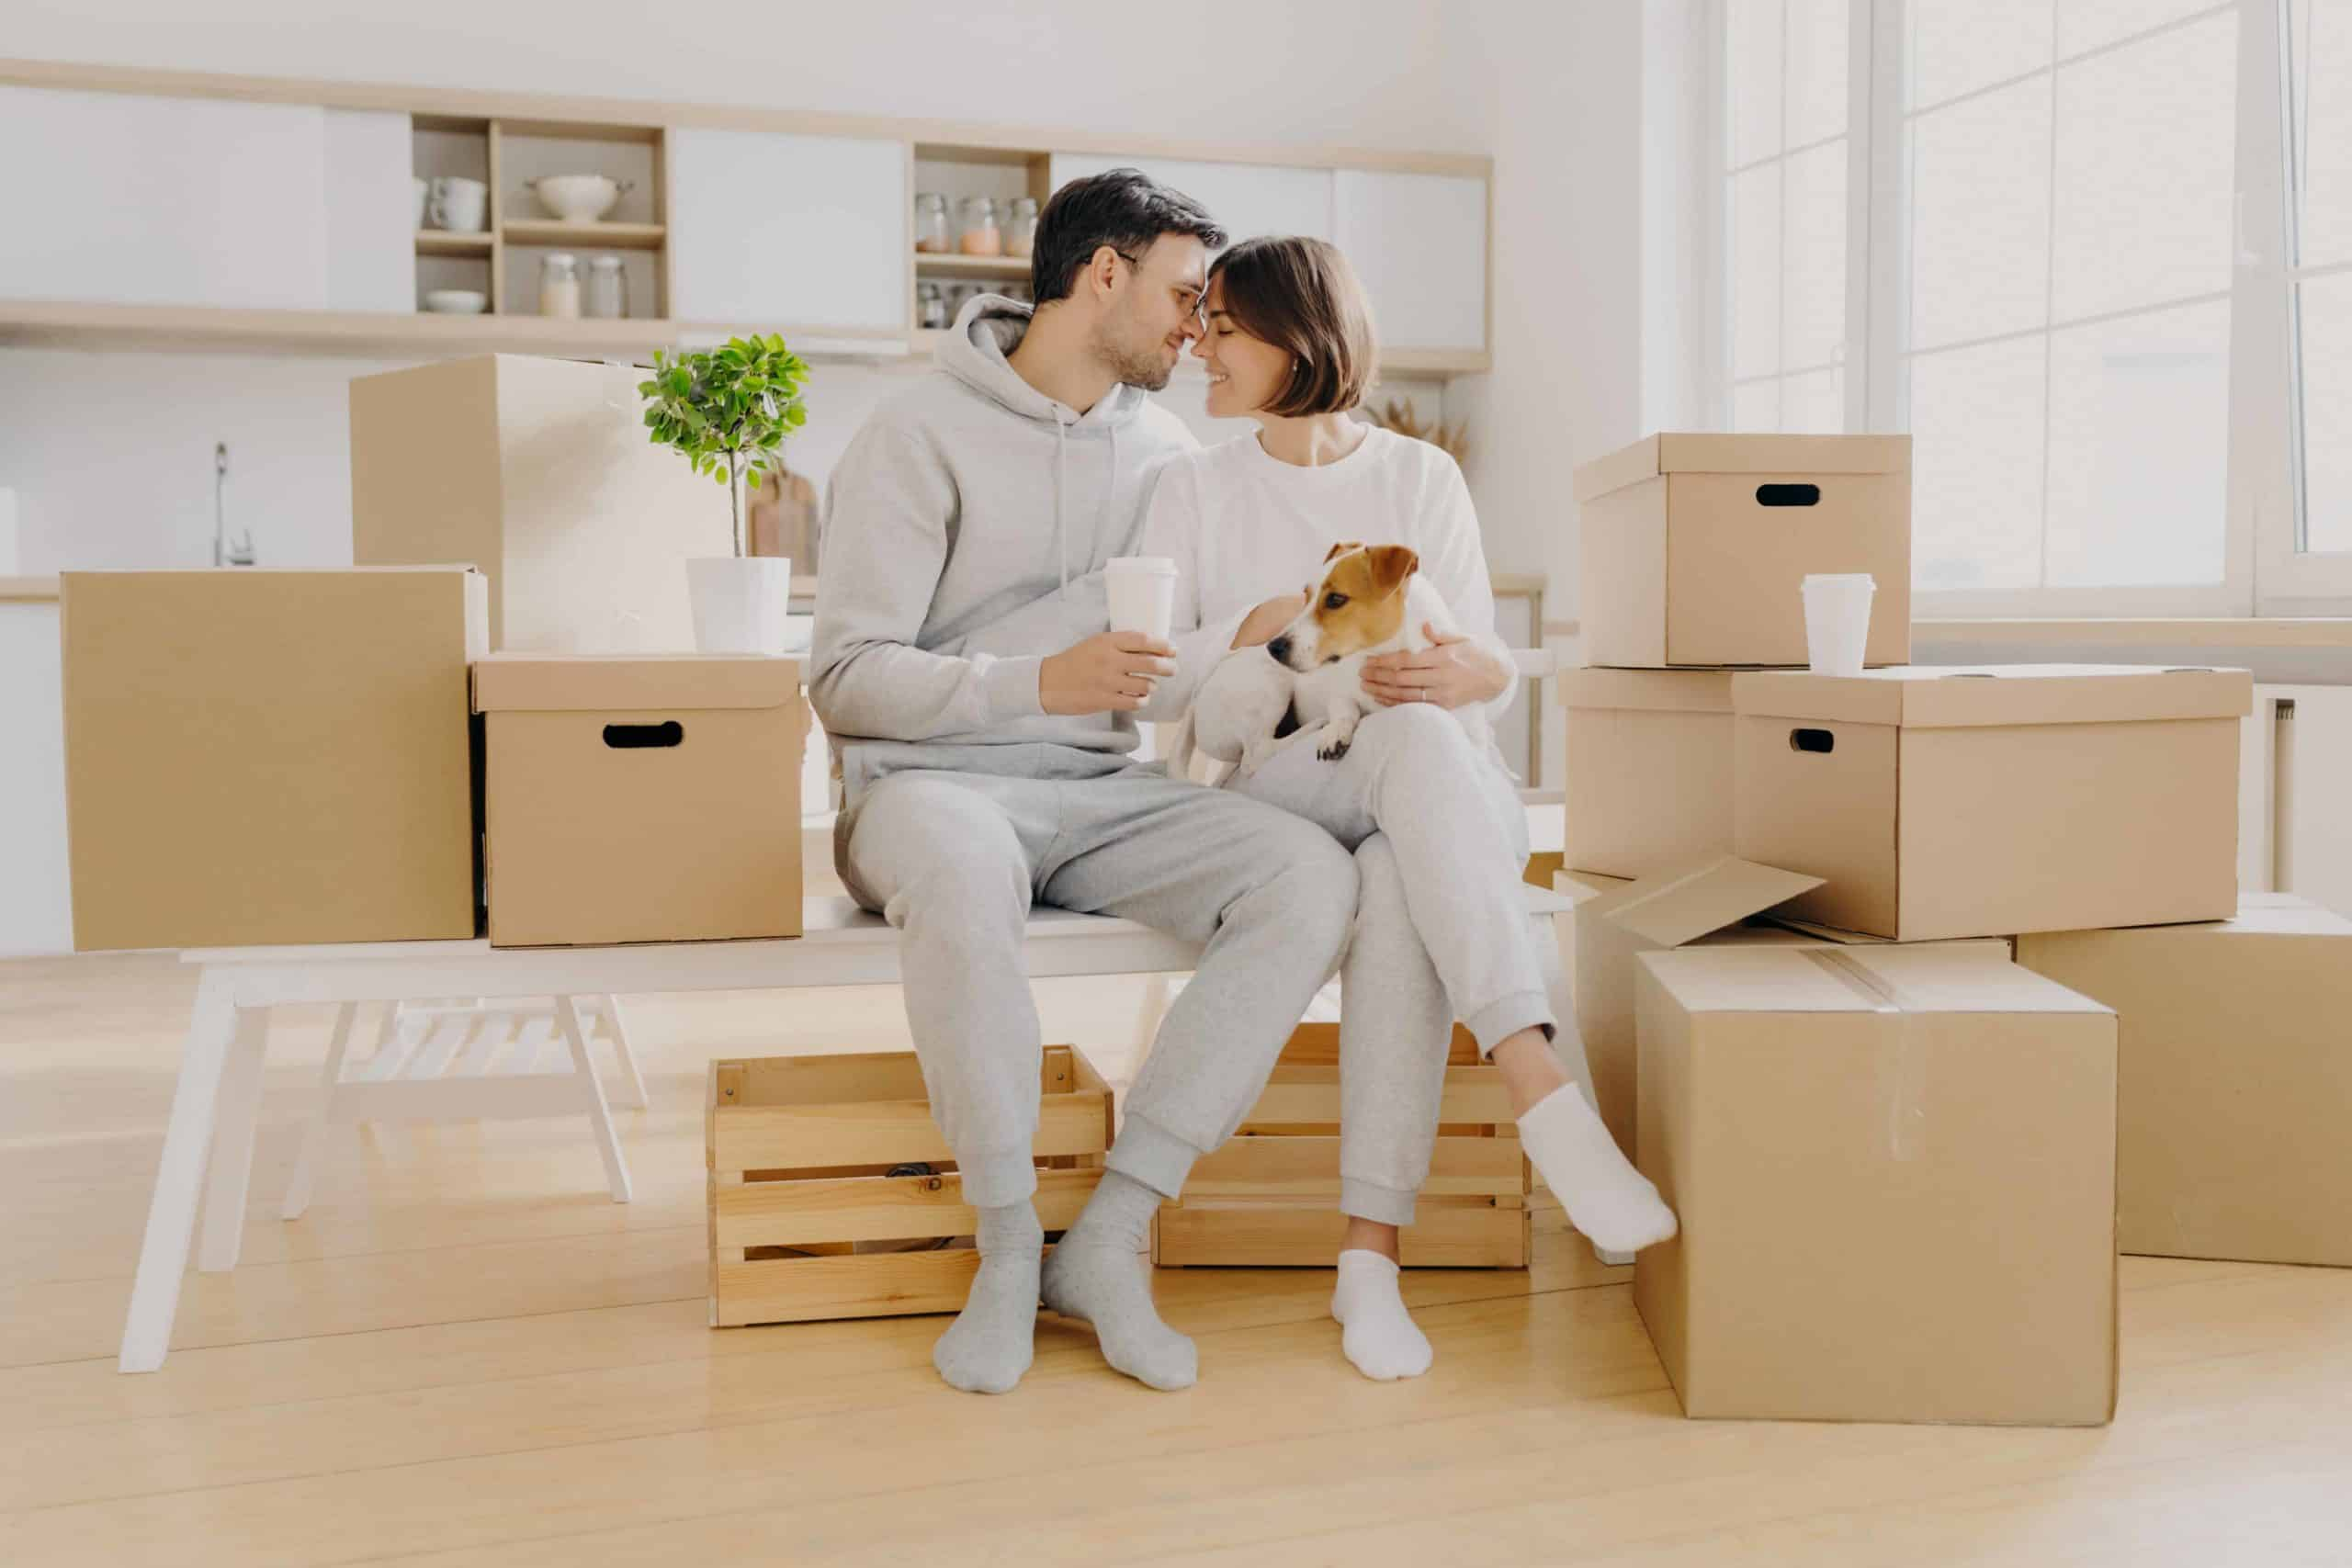 Couple sits with Jack Russell terrier while surrounded by moving boxes. If your landlord makes allowances for pets, do your part to keep your rental neat and free of destruction.